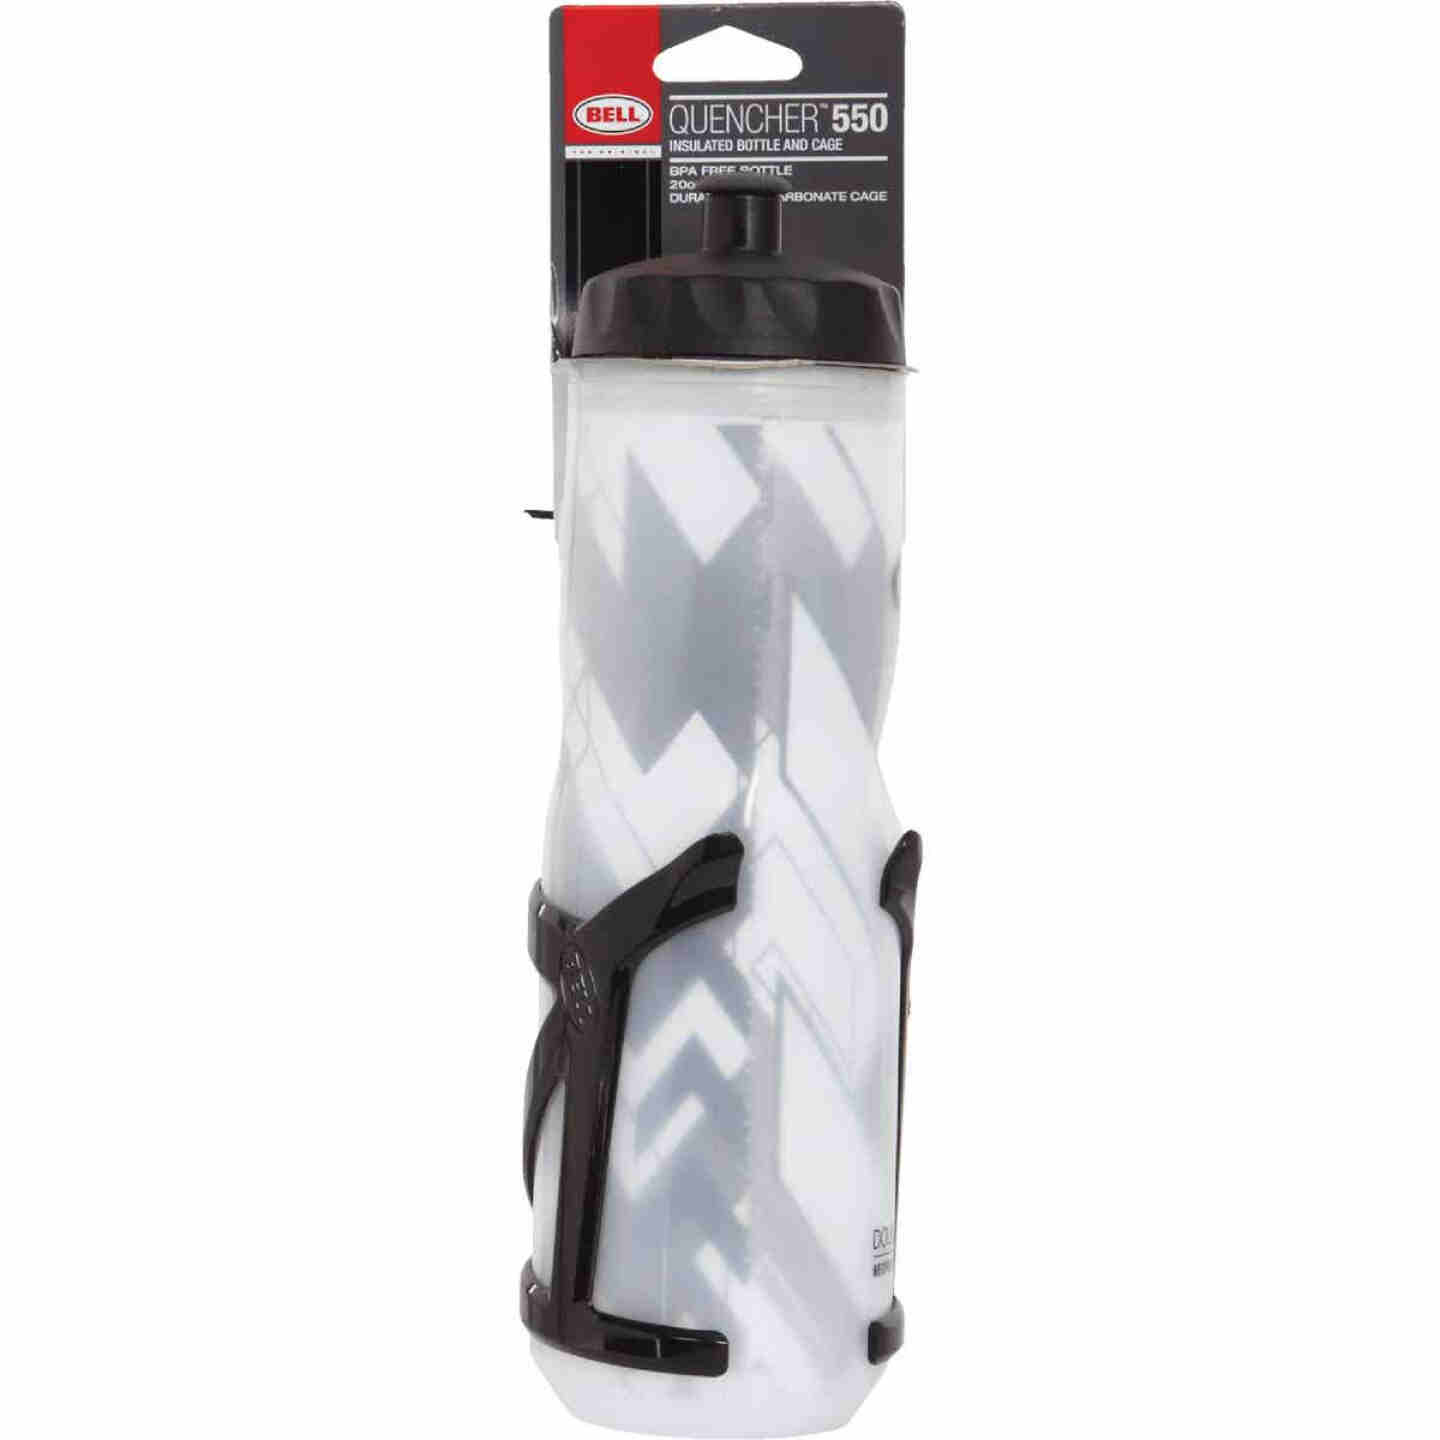 Bell Sports 22 Oz. Plastic Water Bottle & Cage Image 3